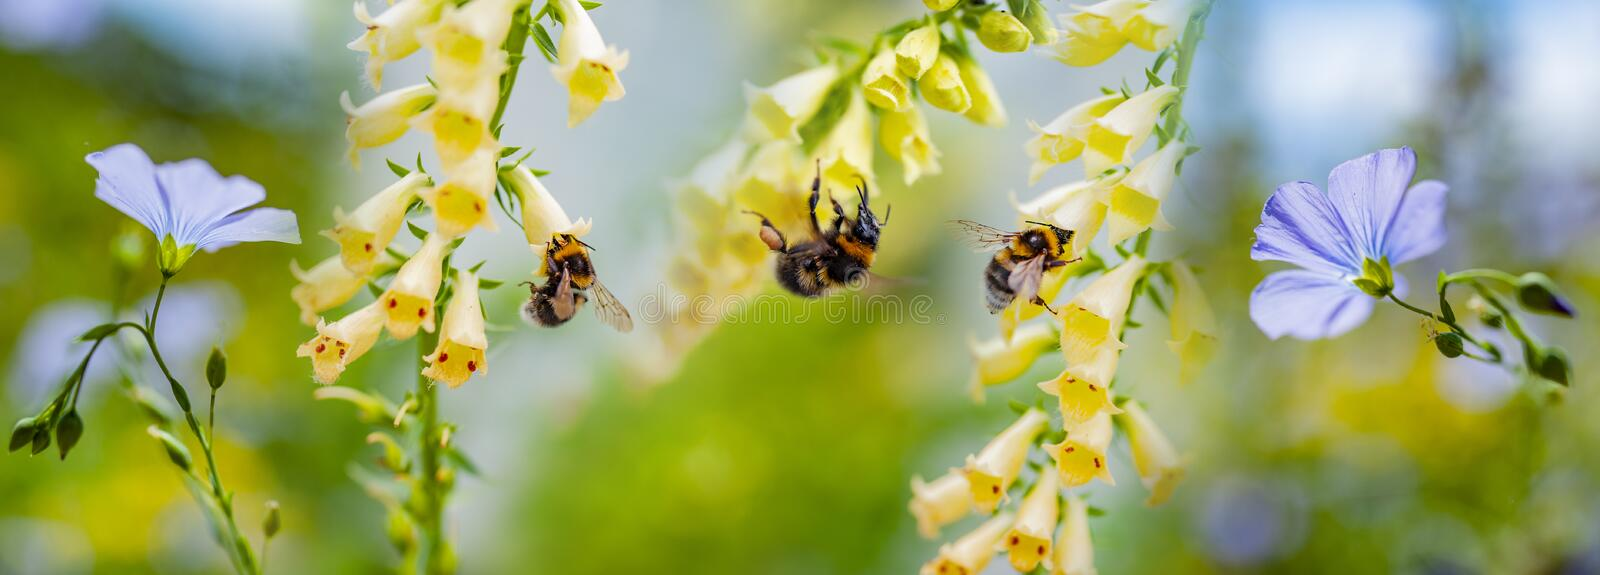 Bumblebees on flowers in the garden. Close up royalty free stock photo